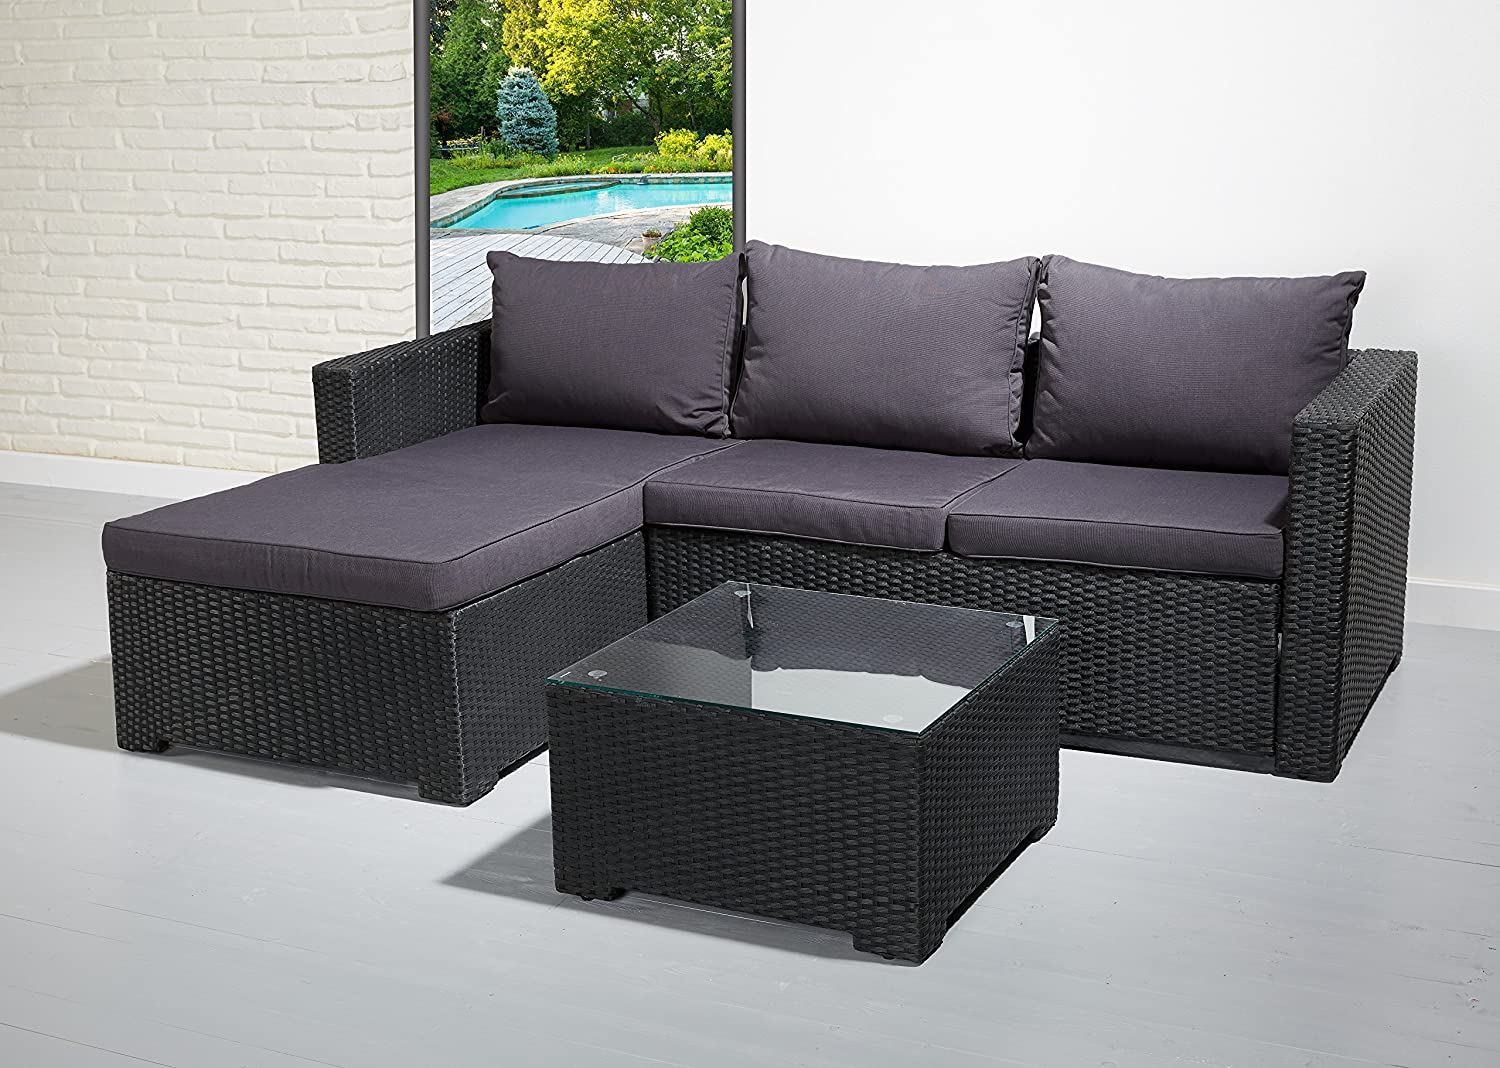 poly rattan essgruppe sitzgruppe schwarz lounge set garnitur gartenm bel g nstig kaufen. Black Bedroom Furniture Sets. Home Design Ideas